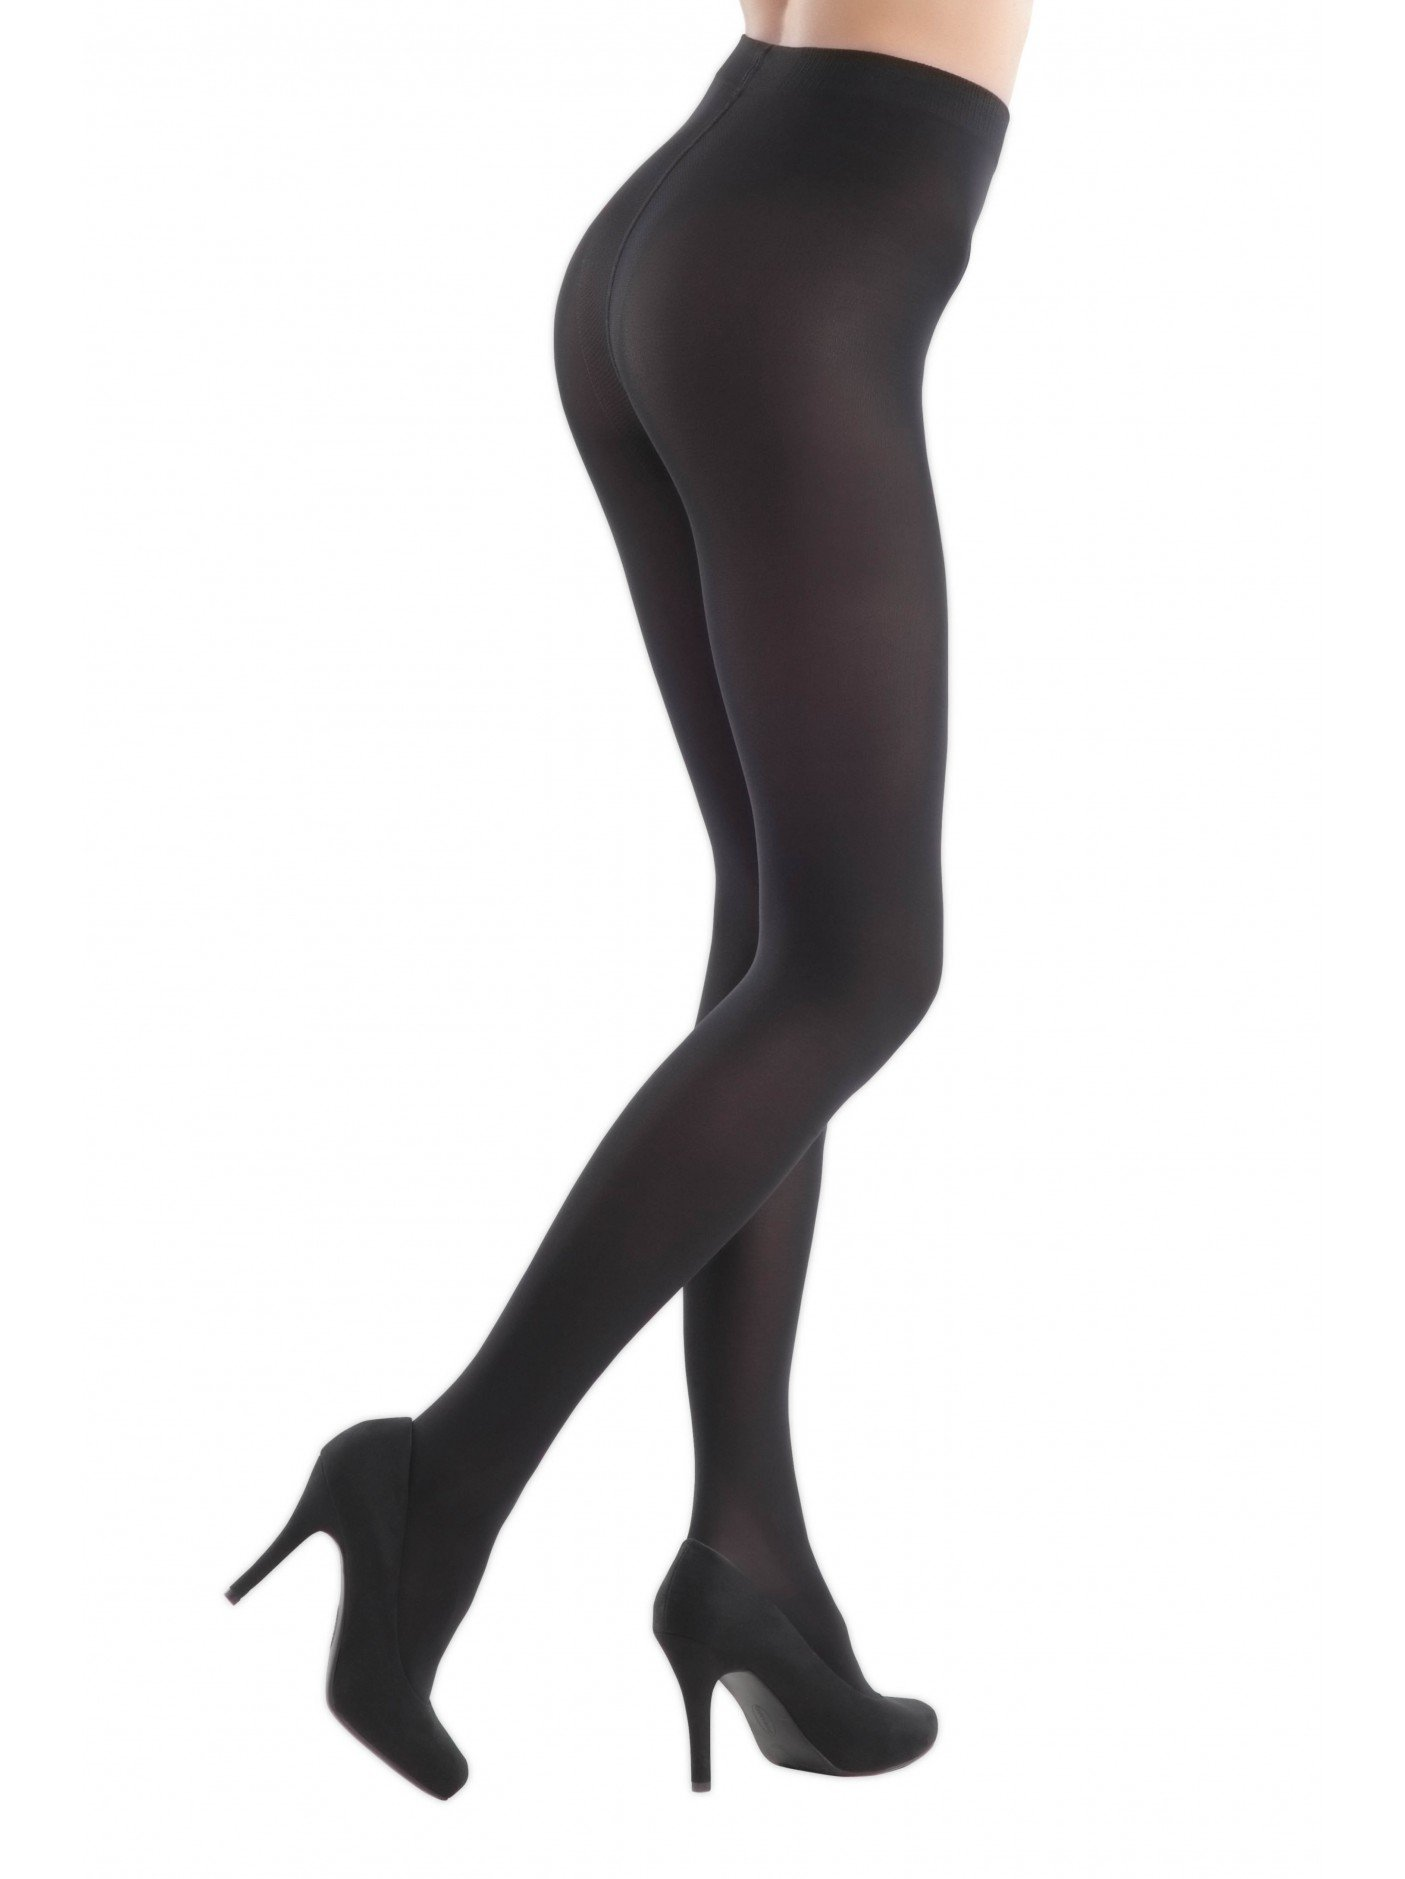 WARM WINTER MICROFIBRA TIGHTS TRIUMF 220 den BellaConte 2